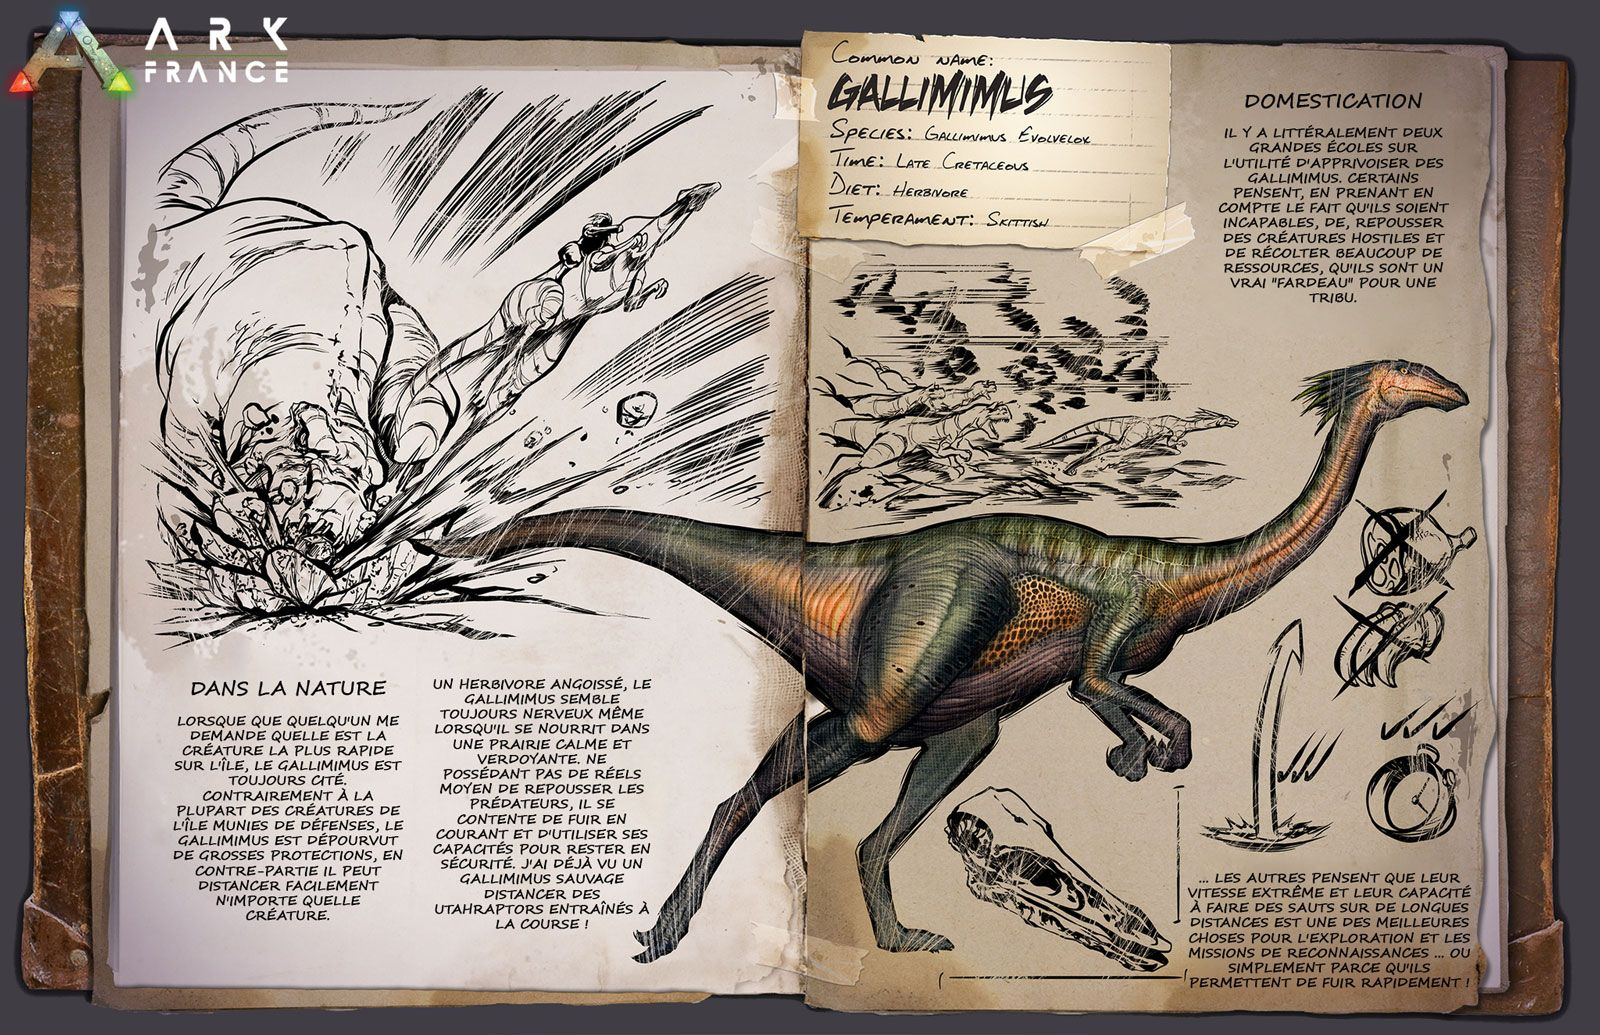 Gallimimus Dossier Fr Jpg 1600 1035 Ark Survival Evolved Game Ark Survival Evolved Survival Books 🌟 check out nitrado game servers for high quality server hosting! pinterest